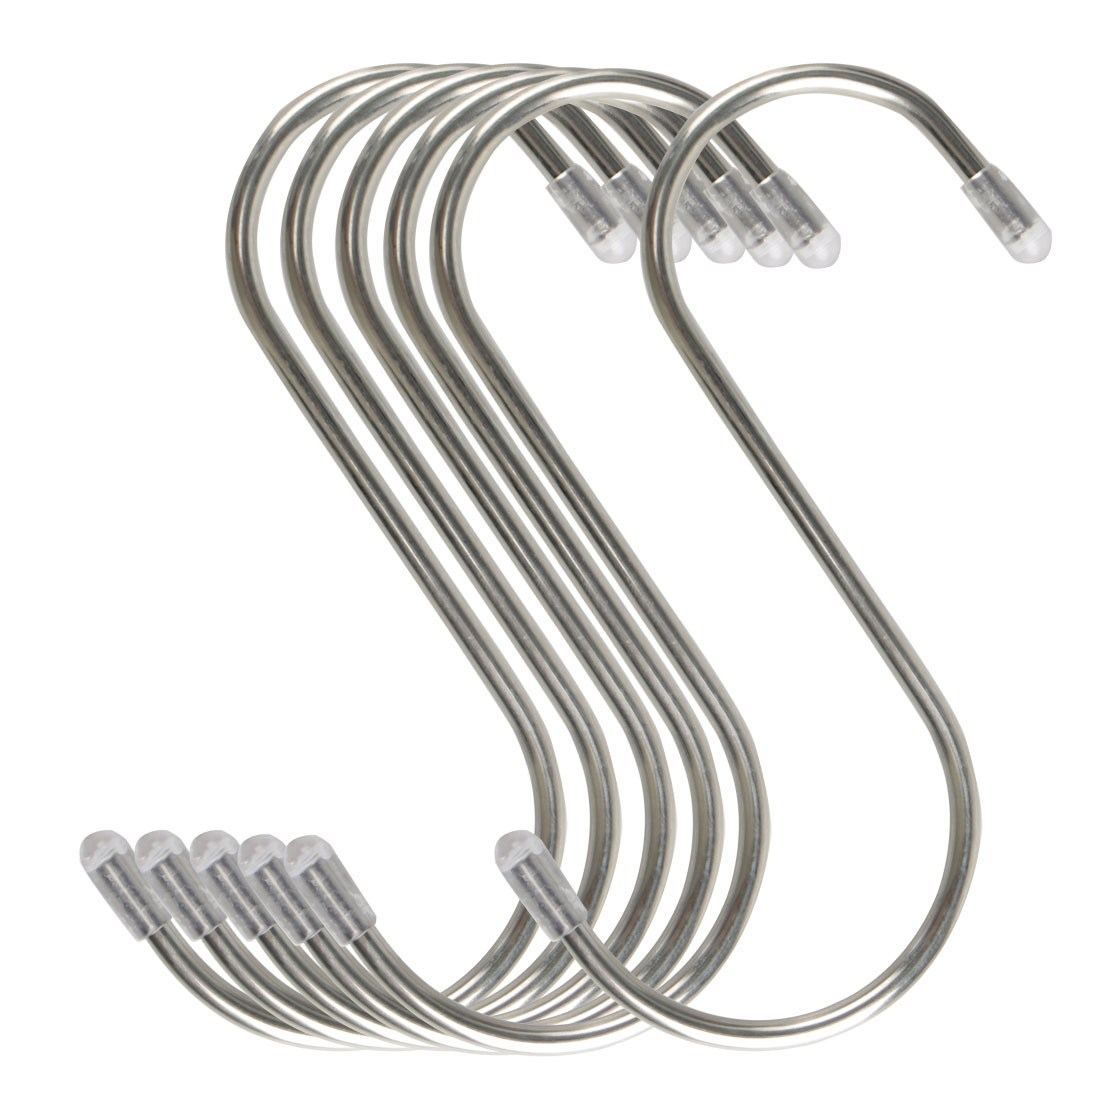 6pcs 4.72 Inch S Shaped Hook Stainless Steel for Kitchenware Hat Coat Holder